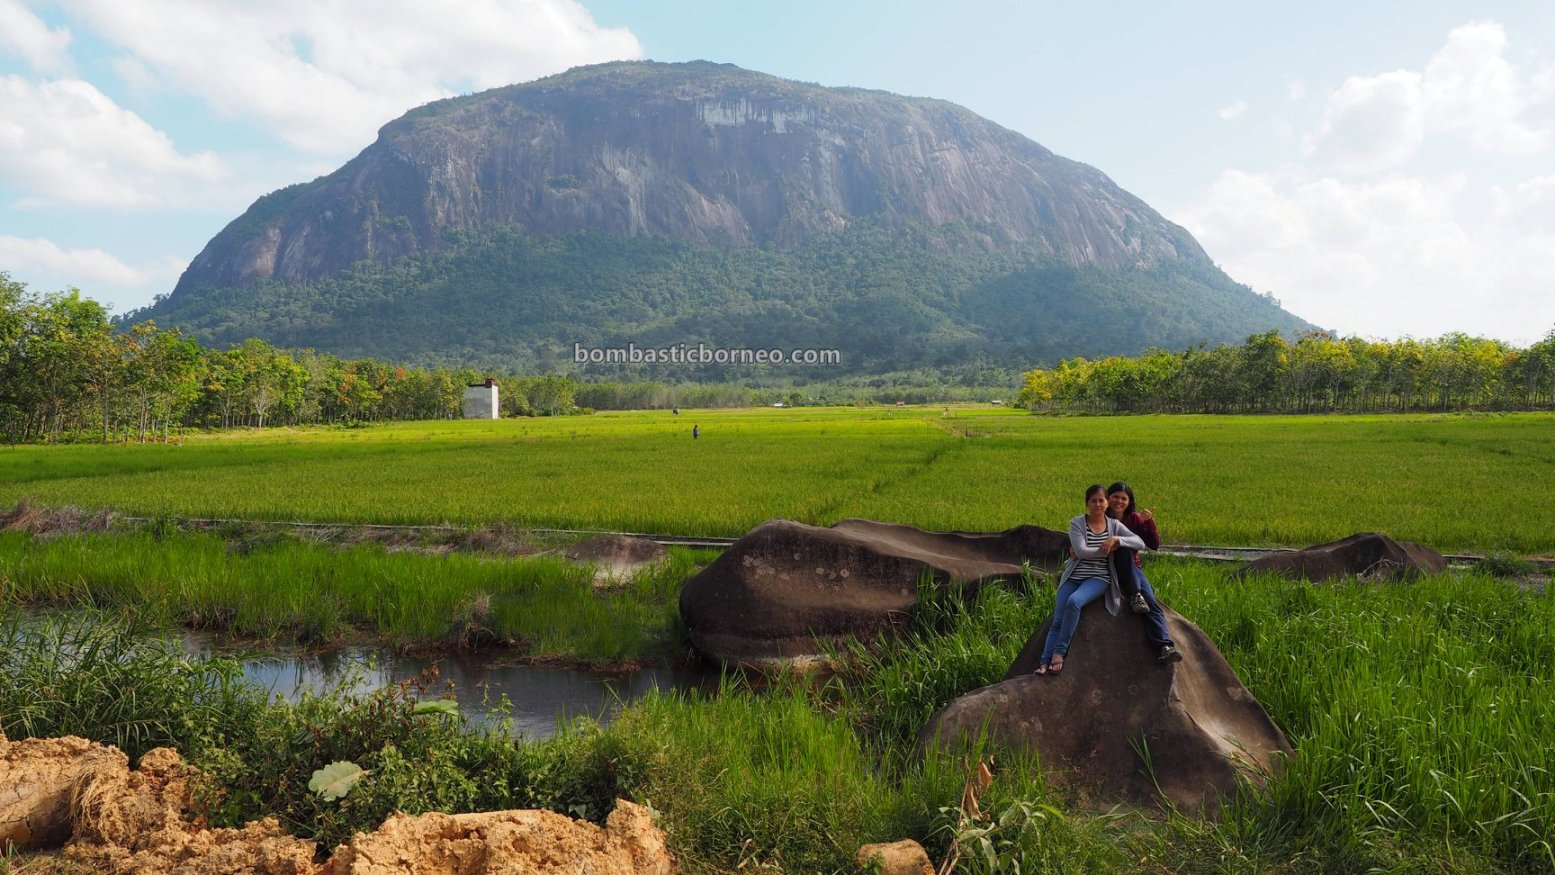 monolith, Bukit Kelam, Mountain, batu raksasa, Black Rock, adventure, nature, destination, Desa Merpak, Kelam Permai, Tourism, tourist attraction, Trans Borneo, 婆罗洲独块巨石, 印尼西加里曼丹, 新党旅游景点